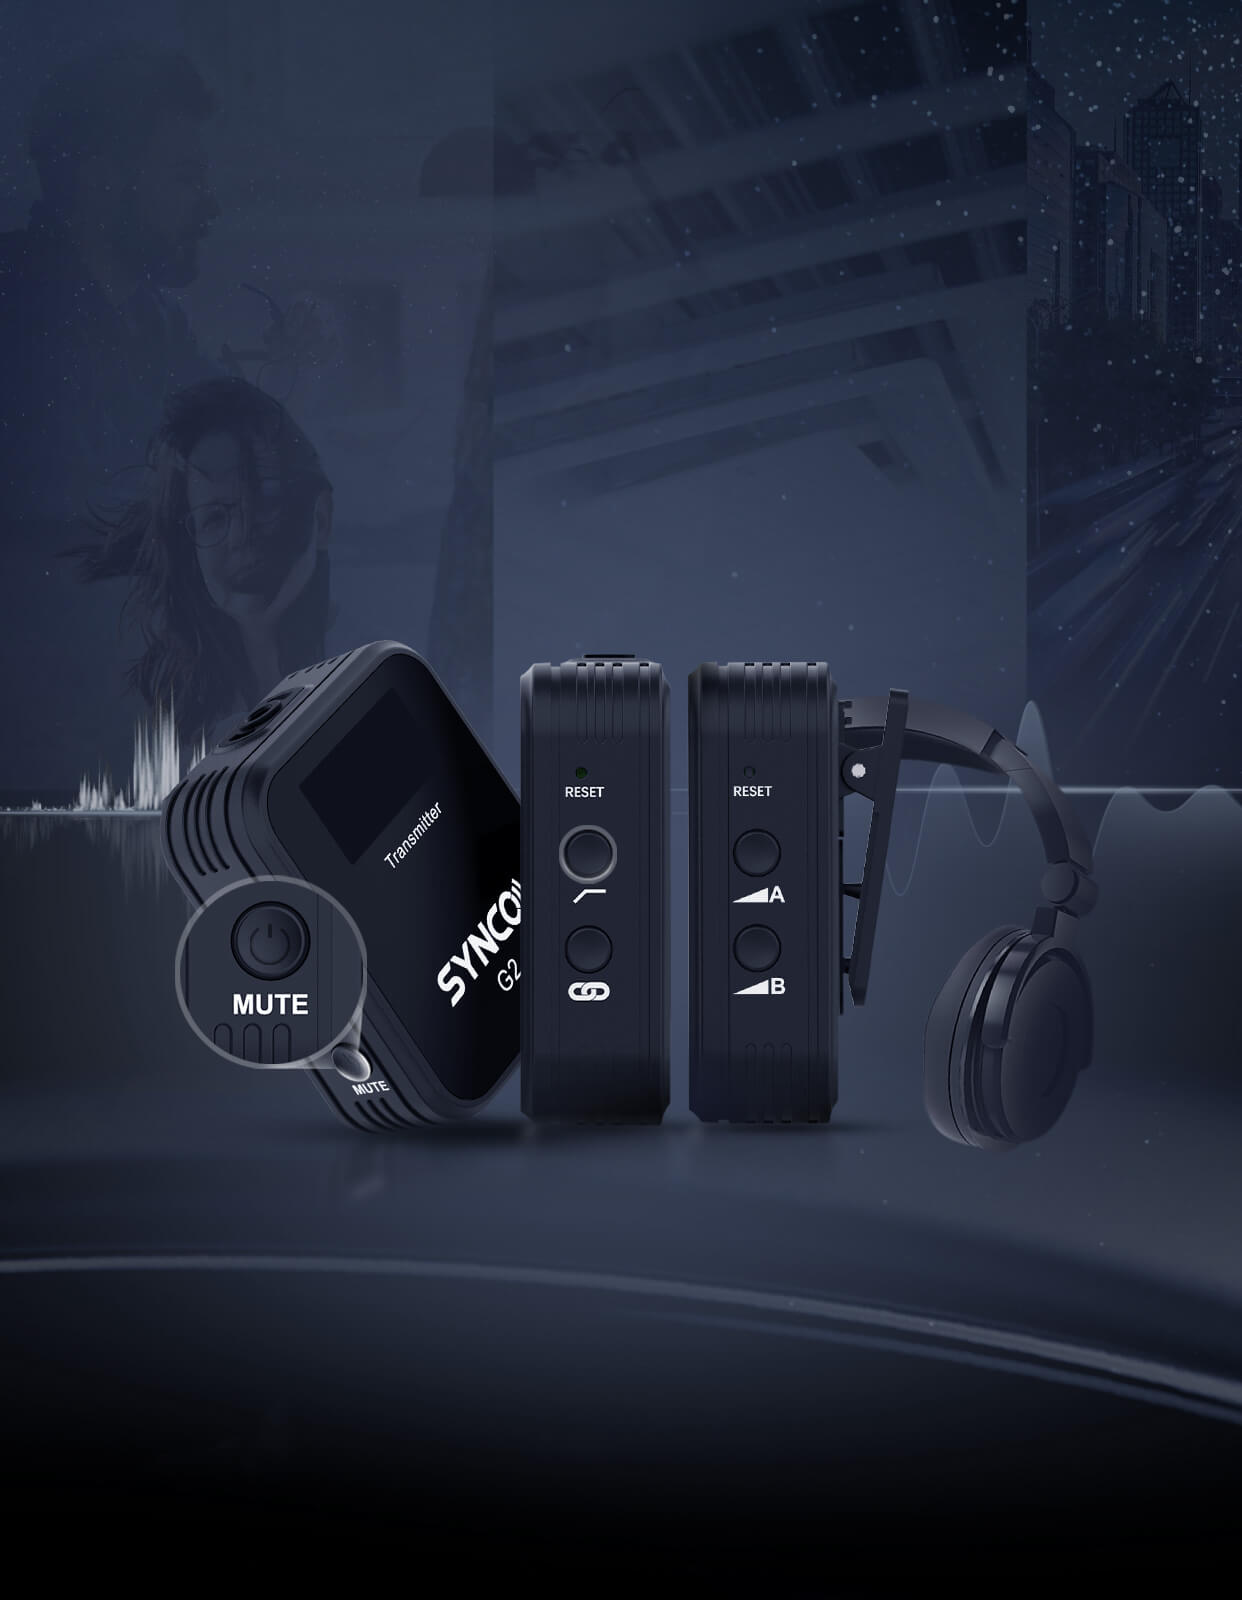 SYNCO G2(A2) Small Features Run to Make Big Differences